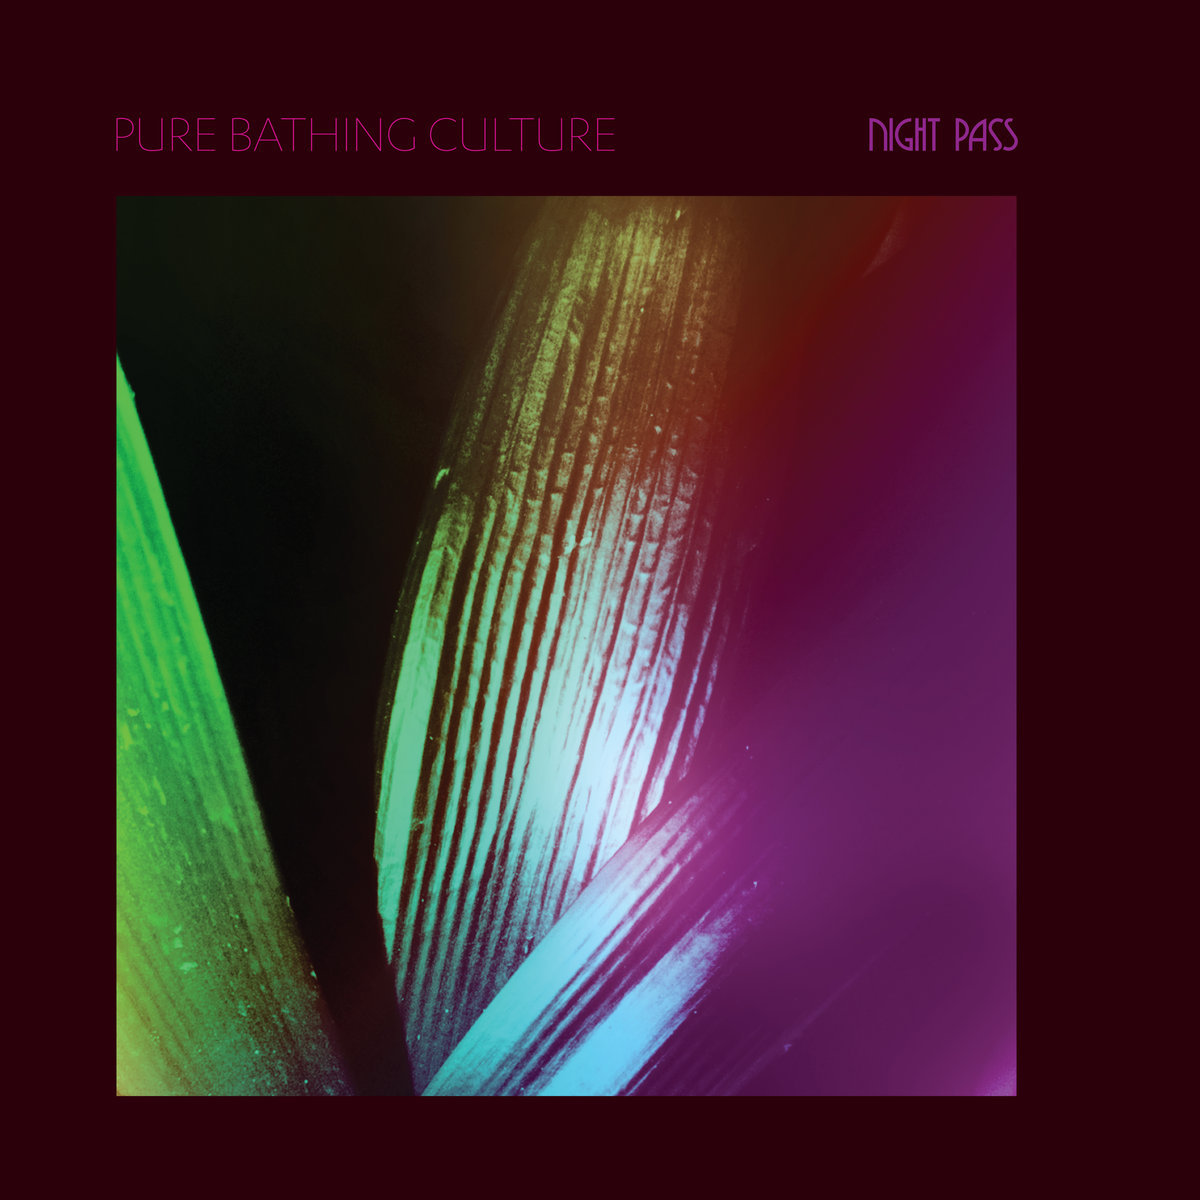 Pure Bathing Culture Night Pass - Album Cover.jpg